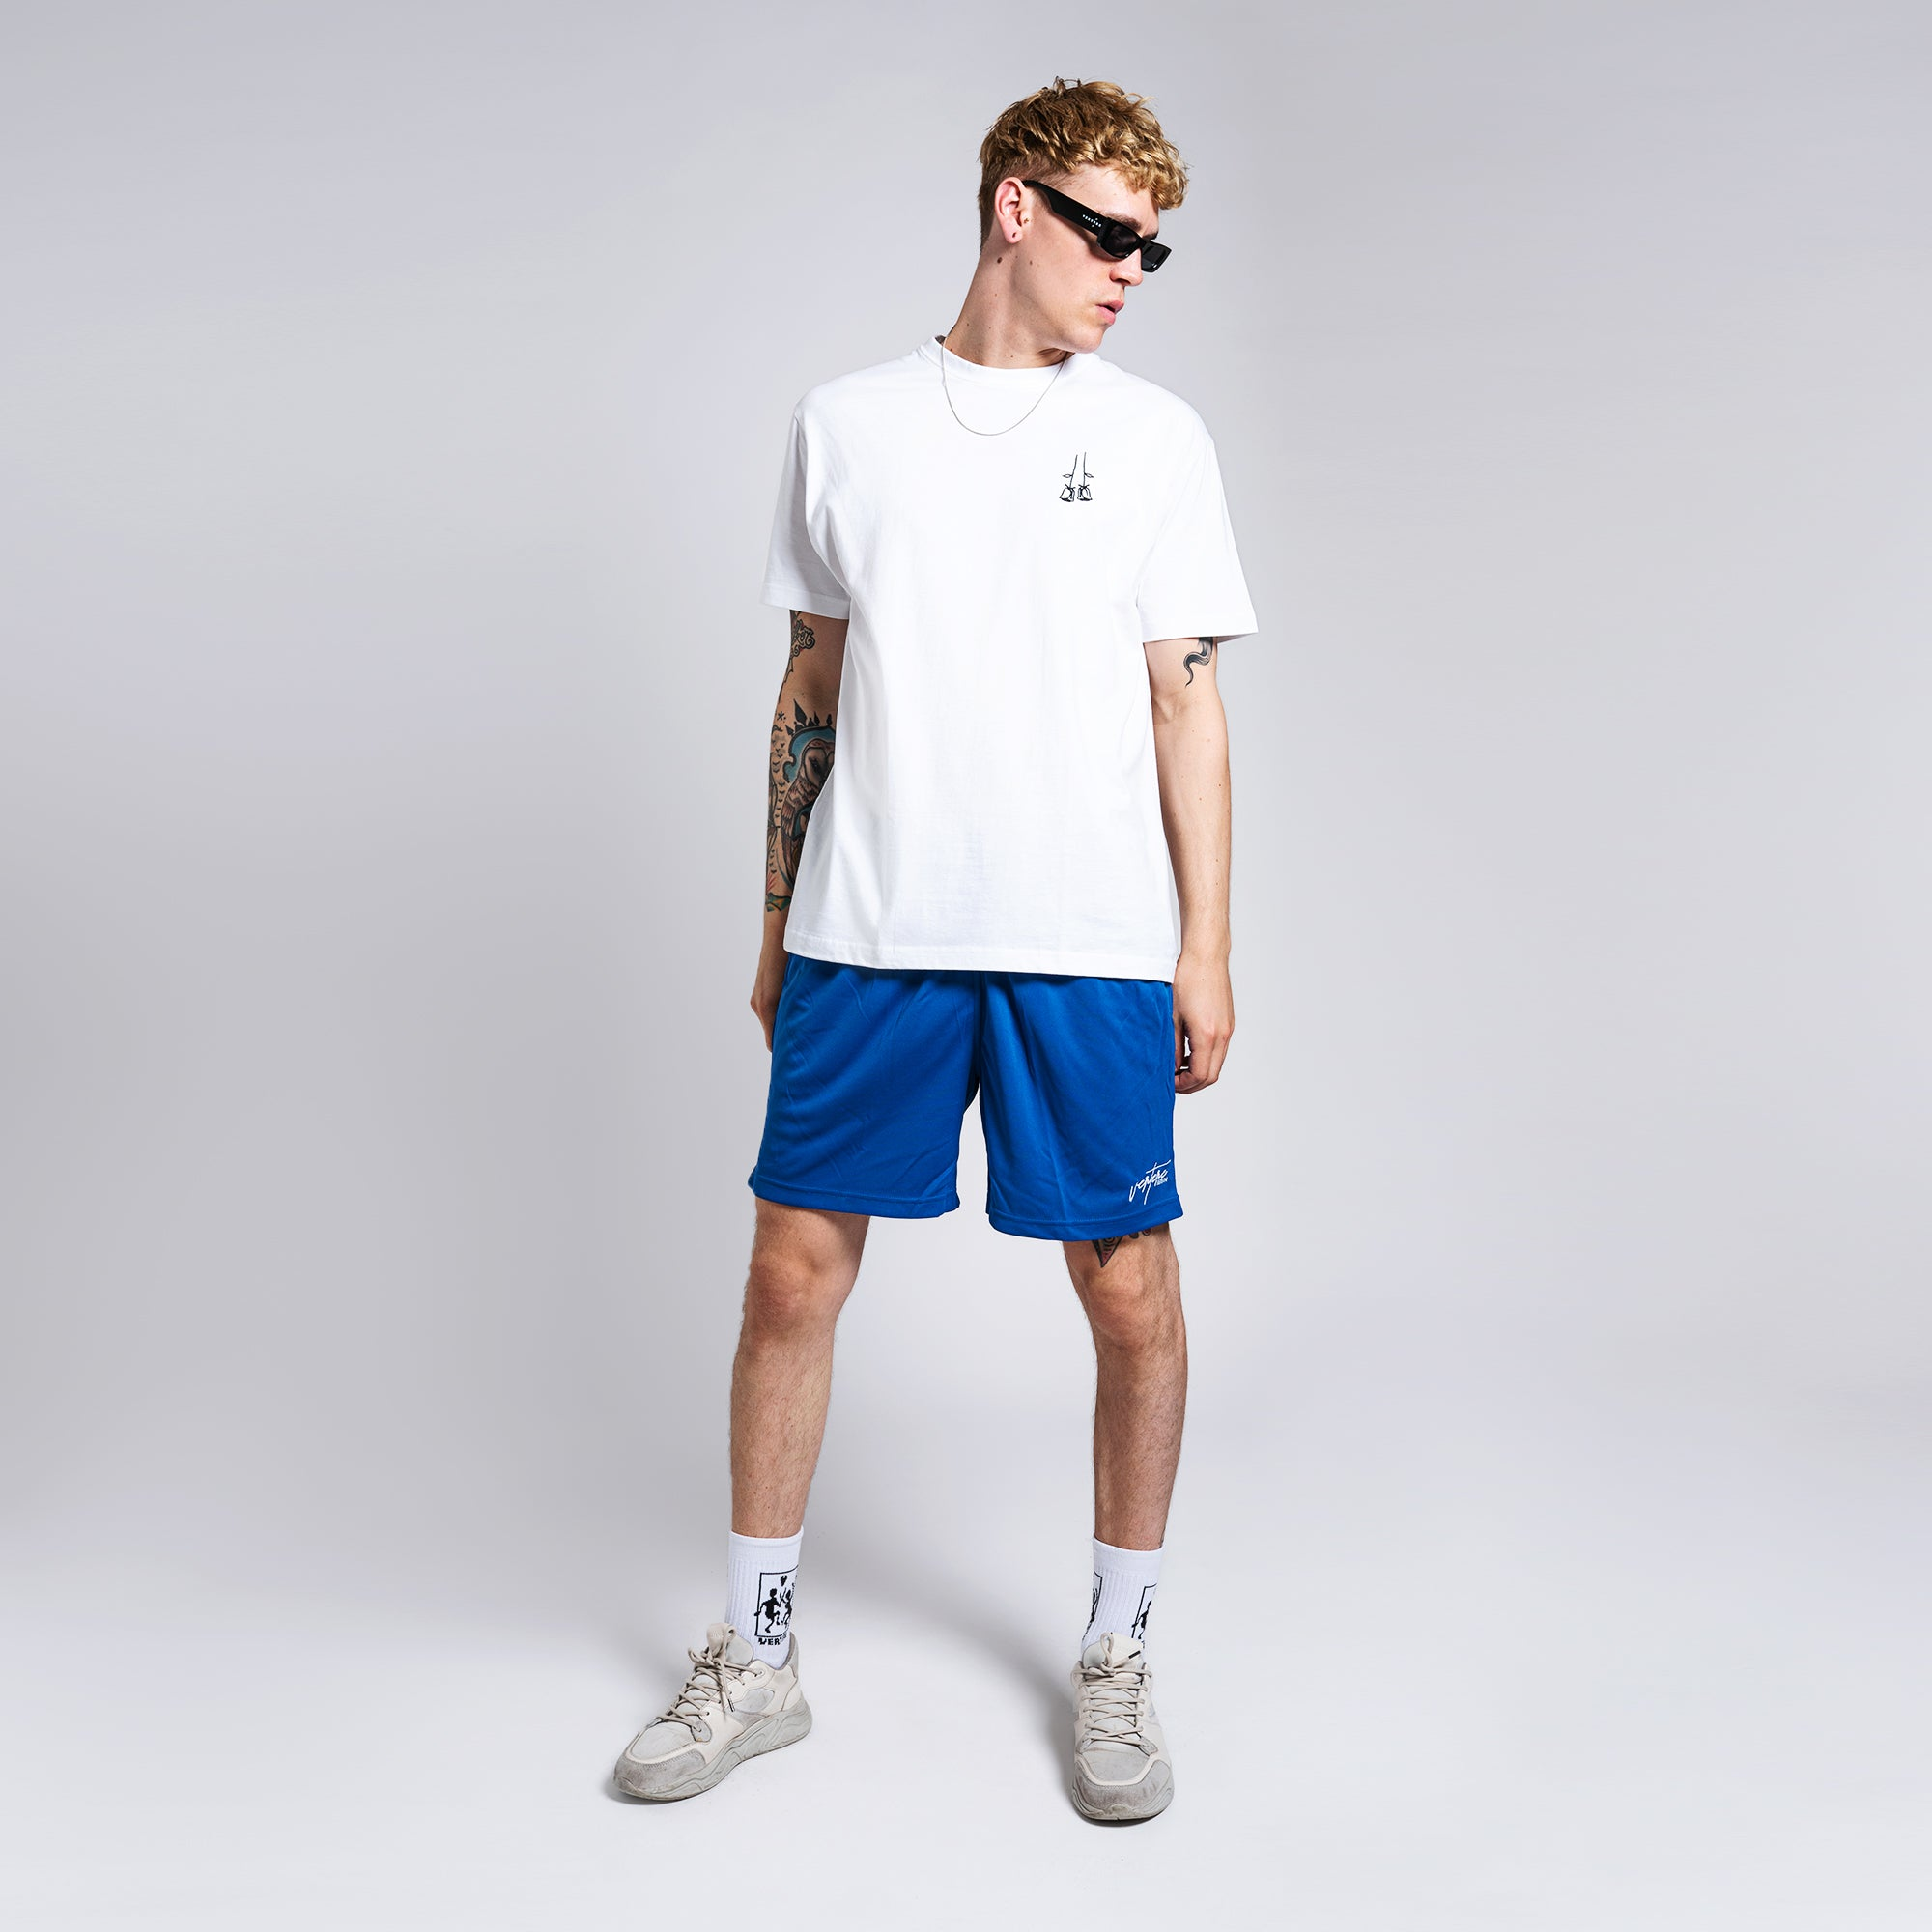 SIGNATURE SHORTS - ROYAL BLUE